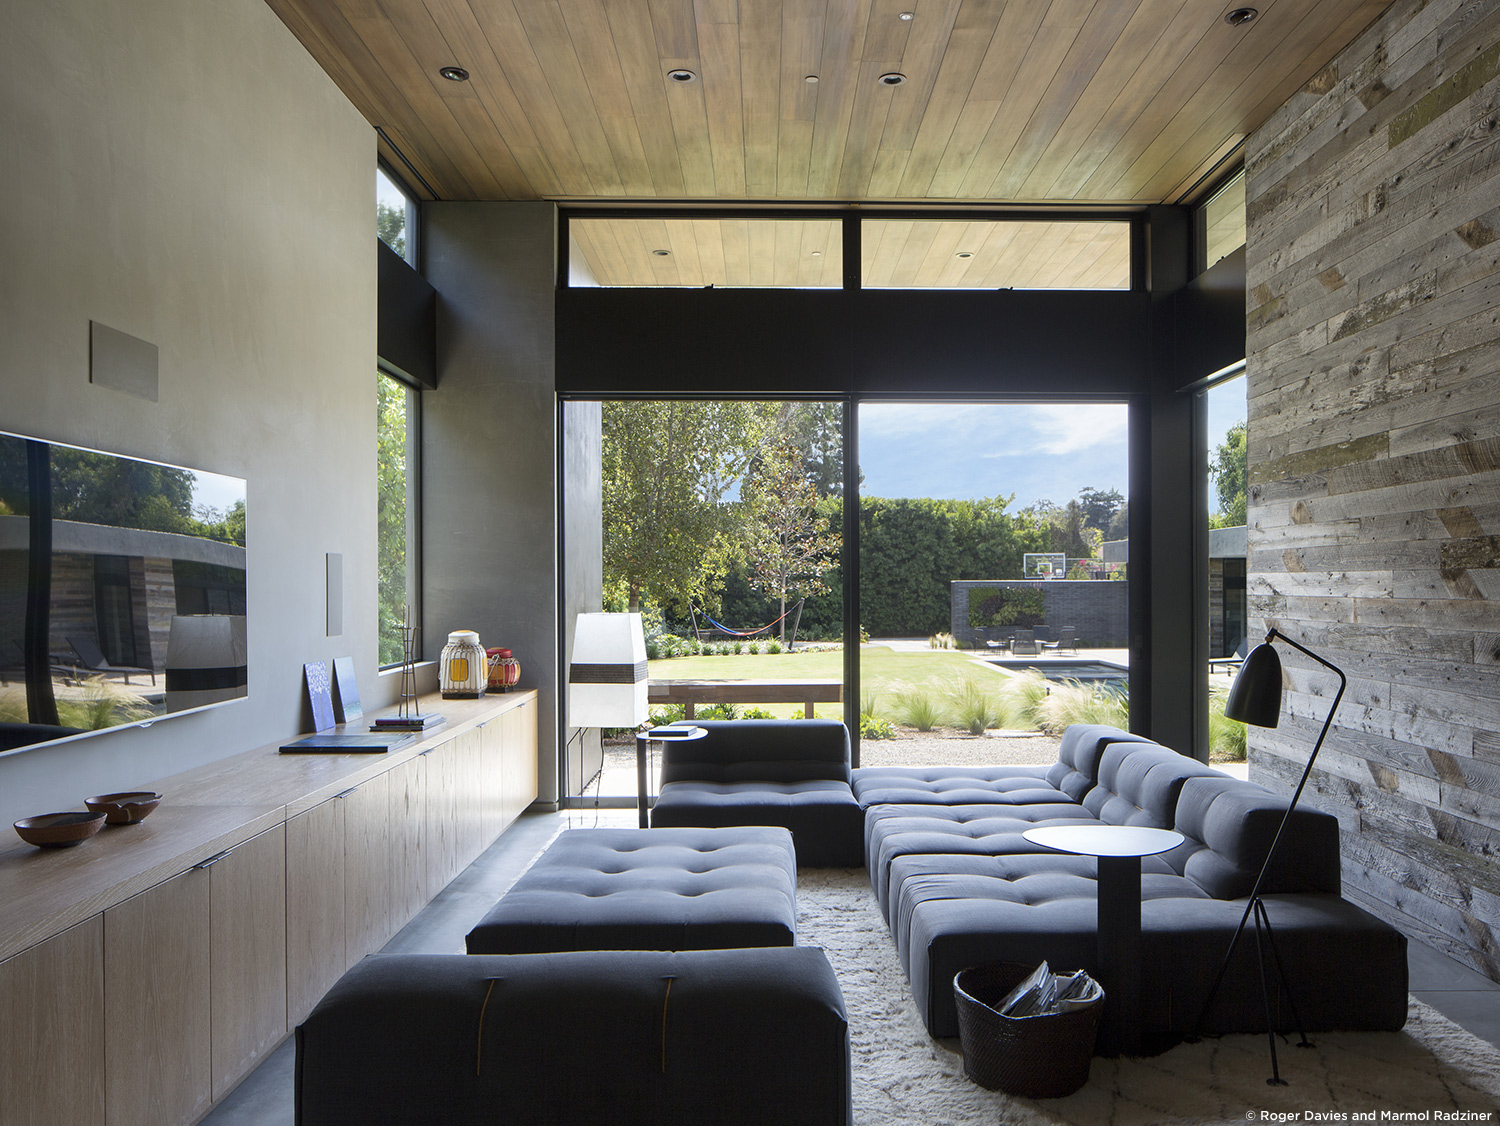 10 Beautiful Living Room Design by Marmol Radziner